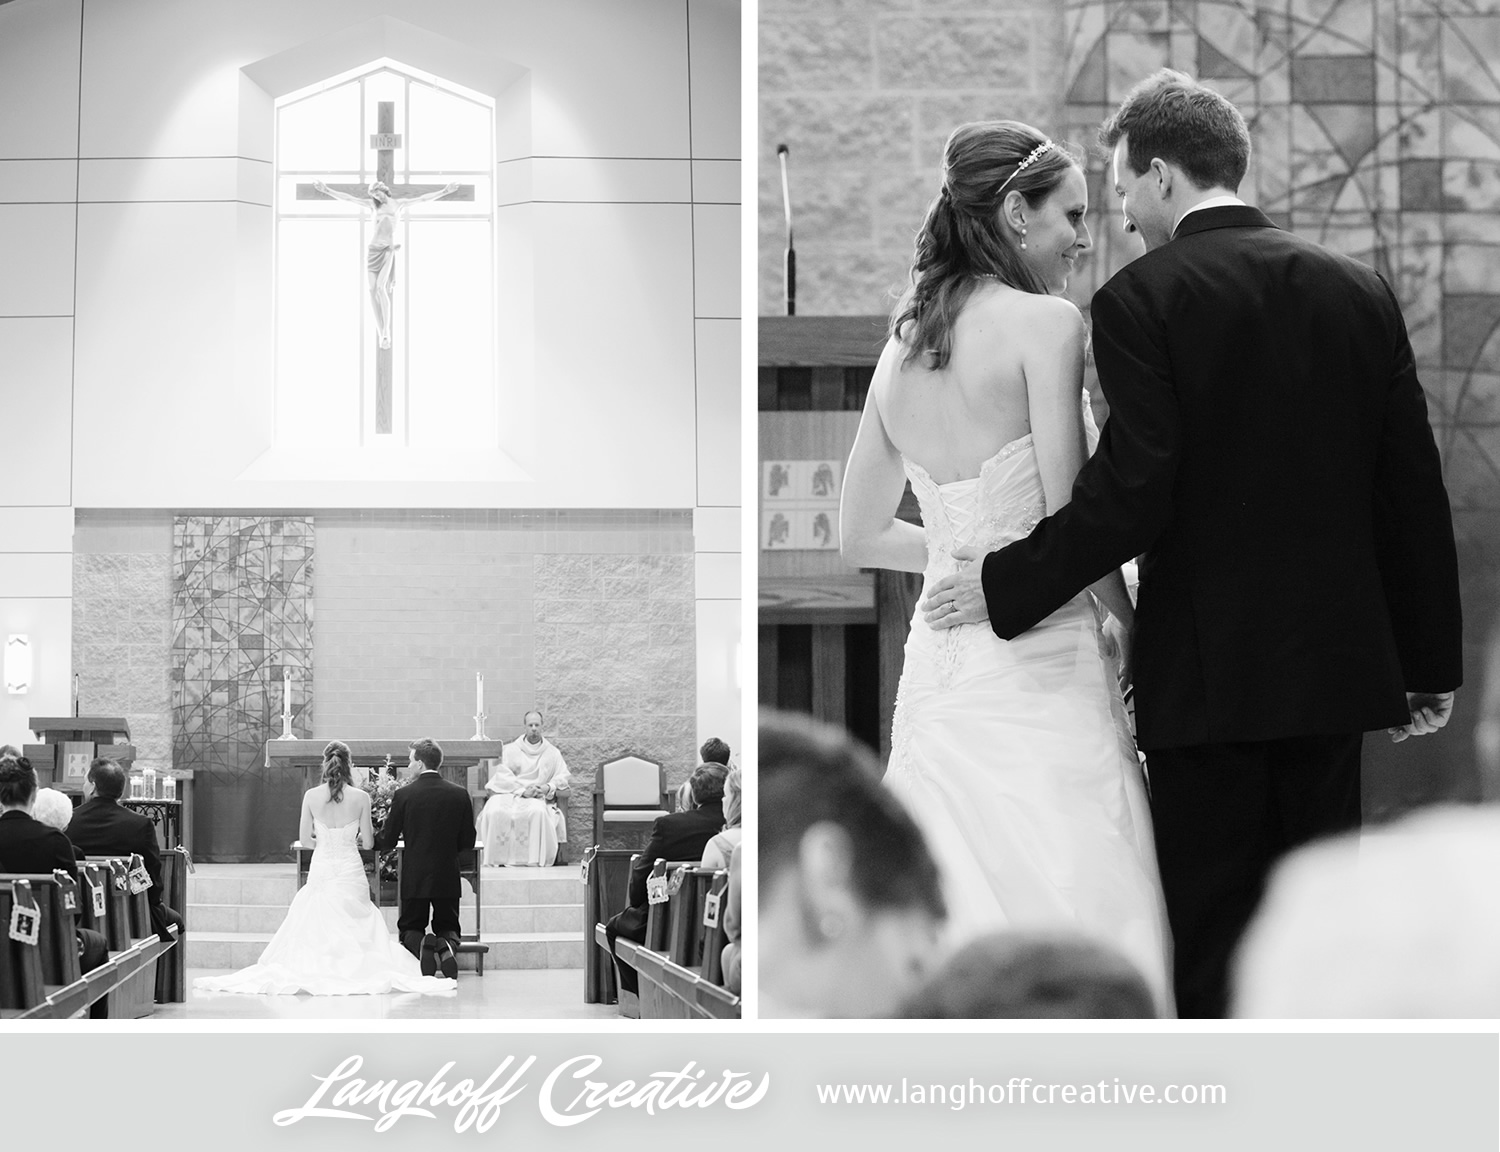 PlainfieldWedding-2013-LanghoffCreative-MattErin-18-photo.jpg